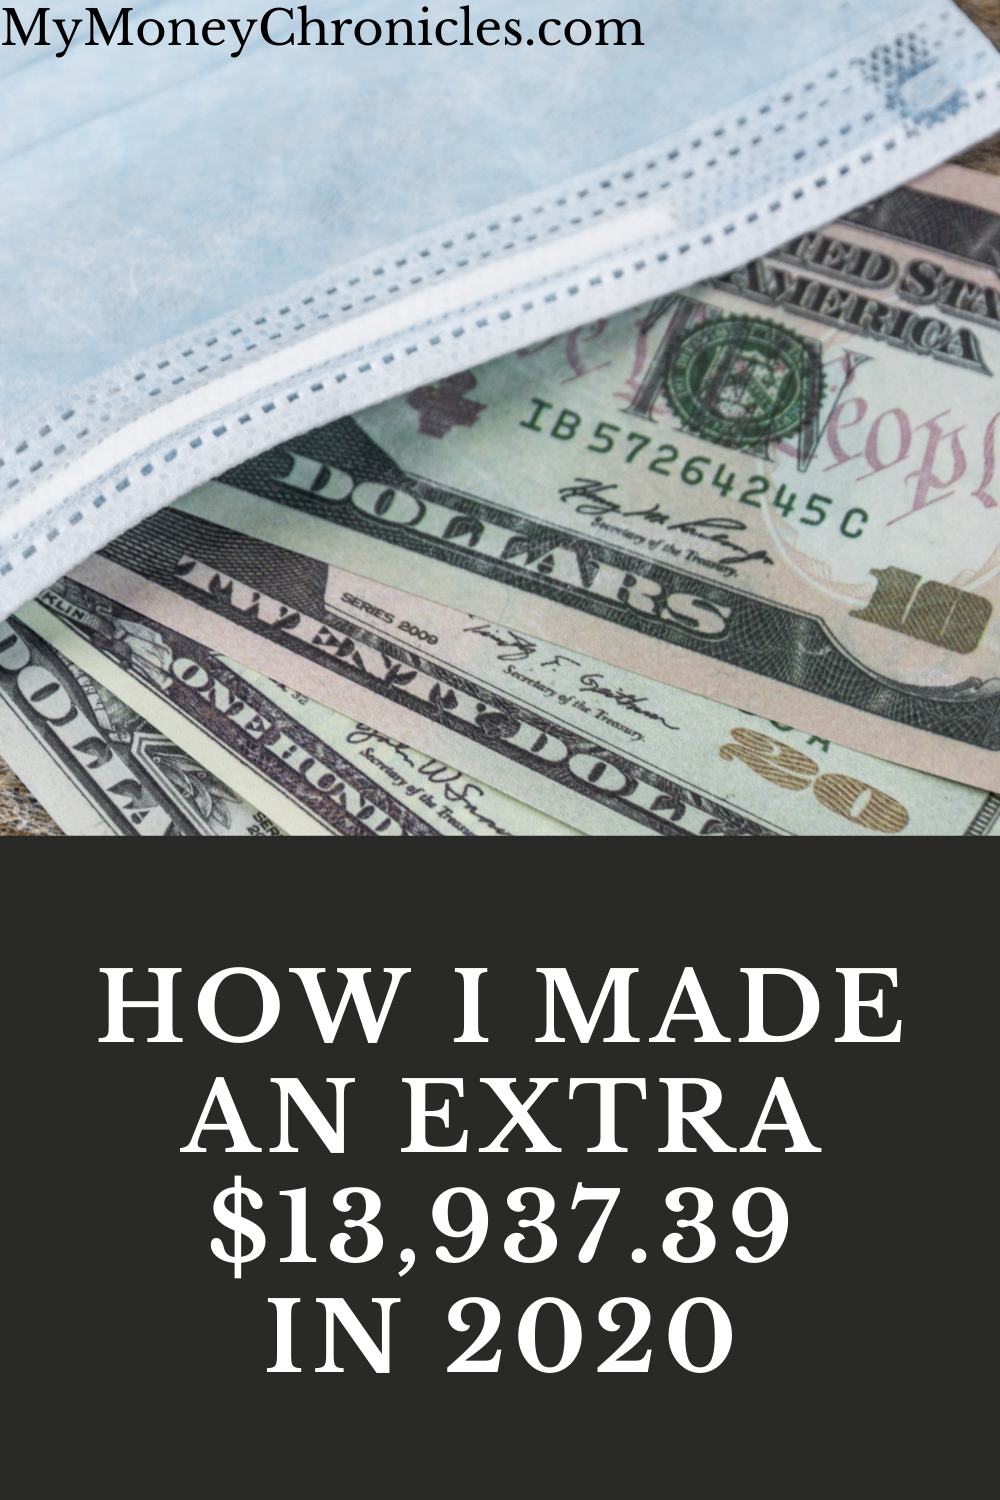 How I Made An Extra $13,937.39 in 2020